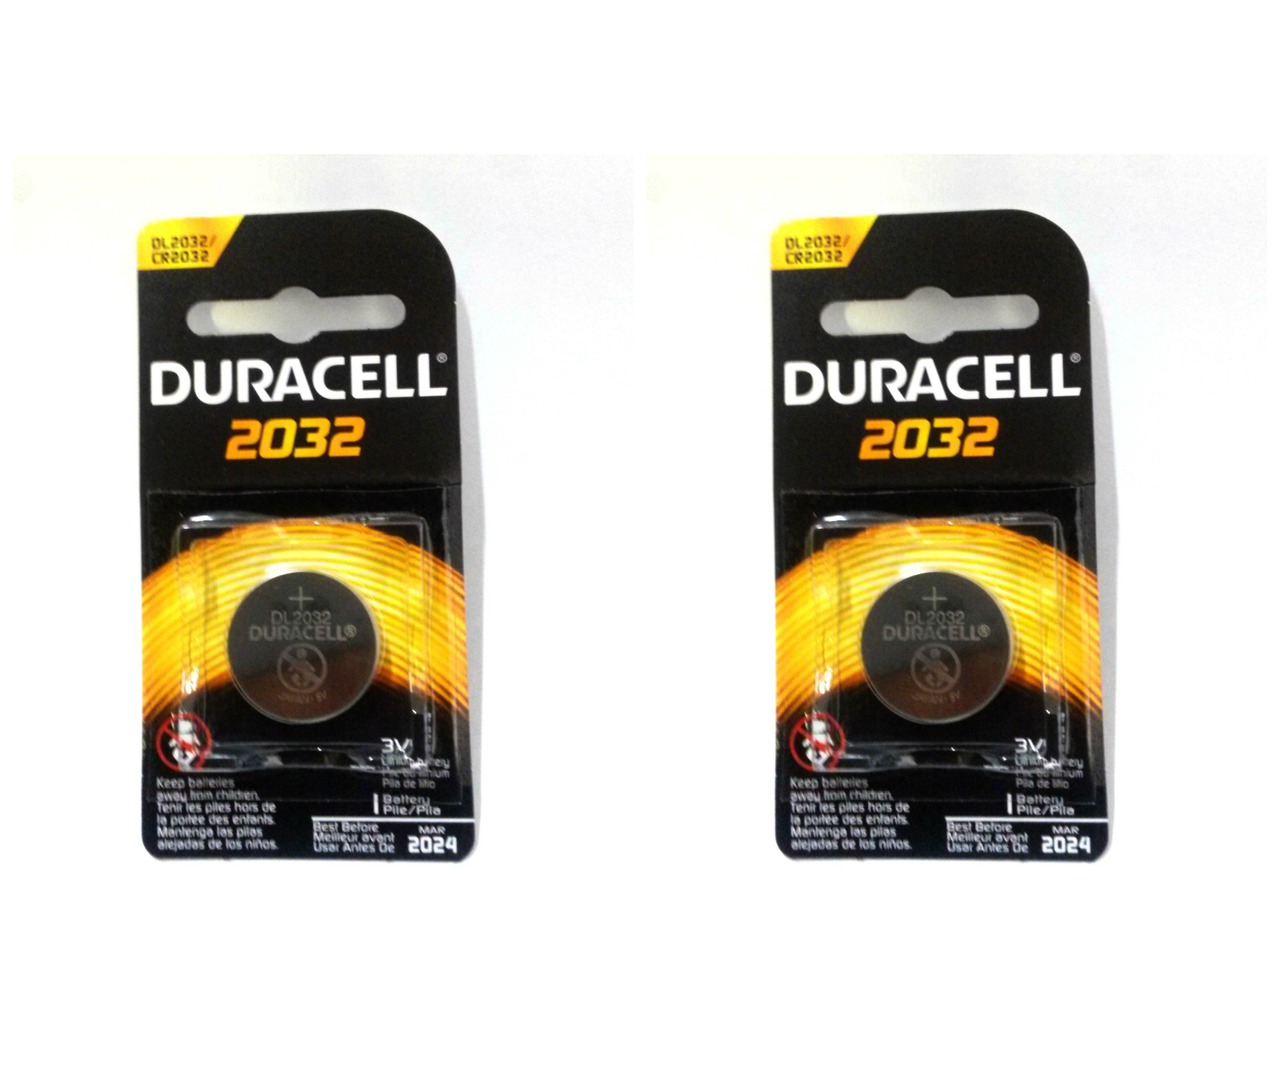 Duracell CR2032 Coin Battery - 2 Pack + FREE SHIPPING